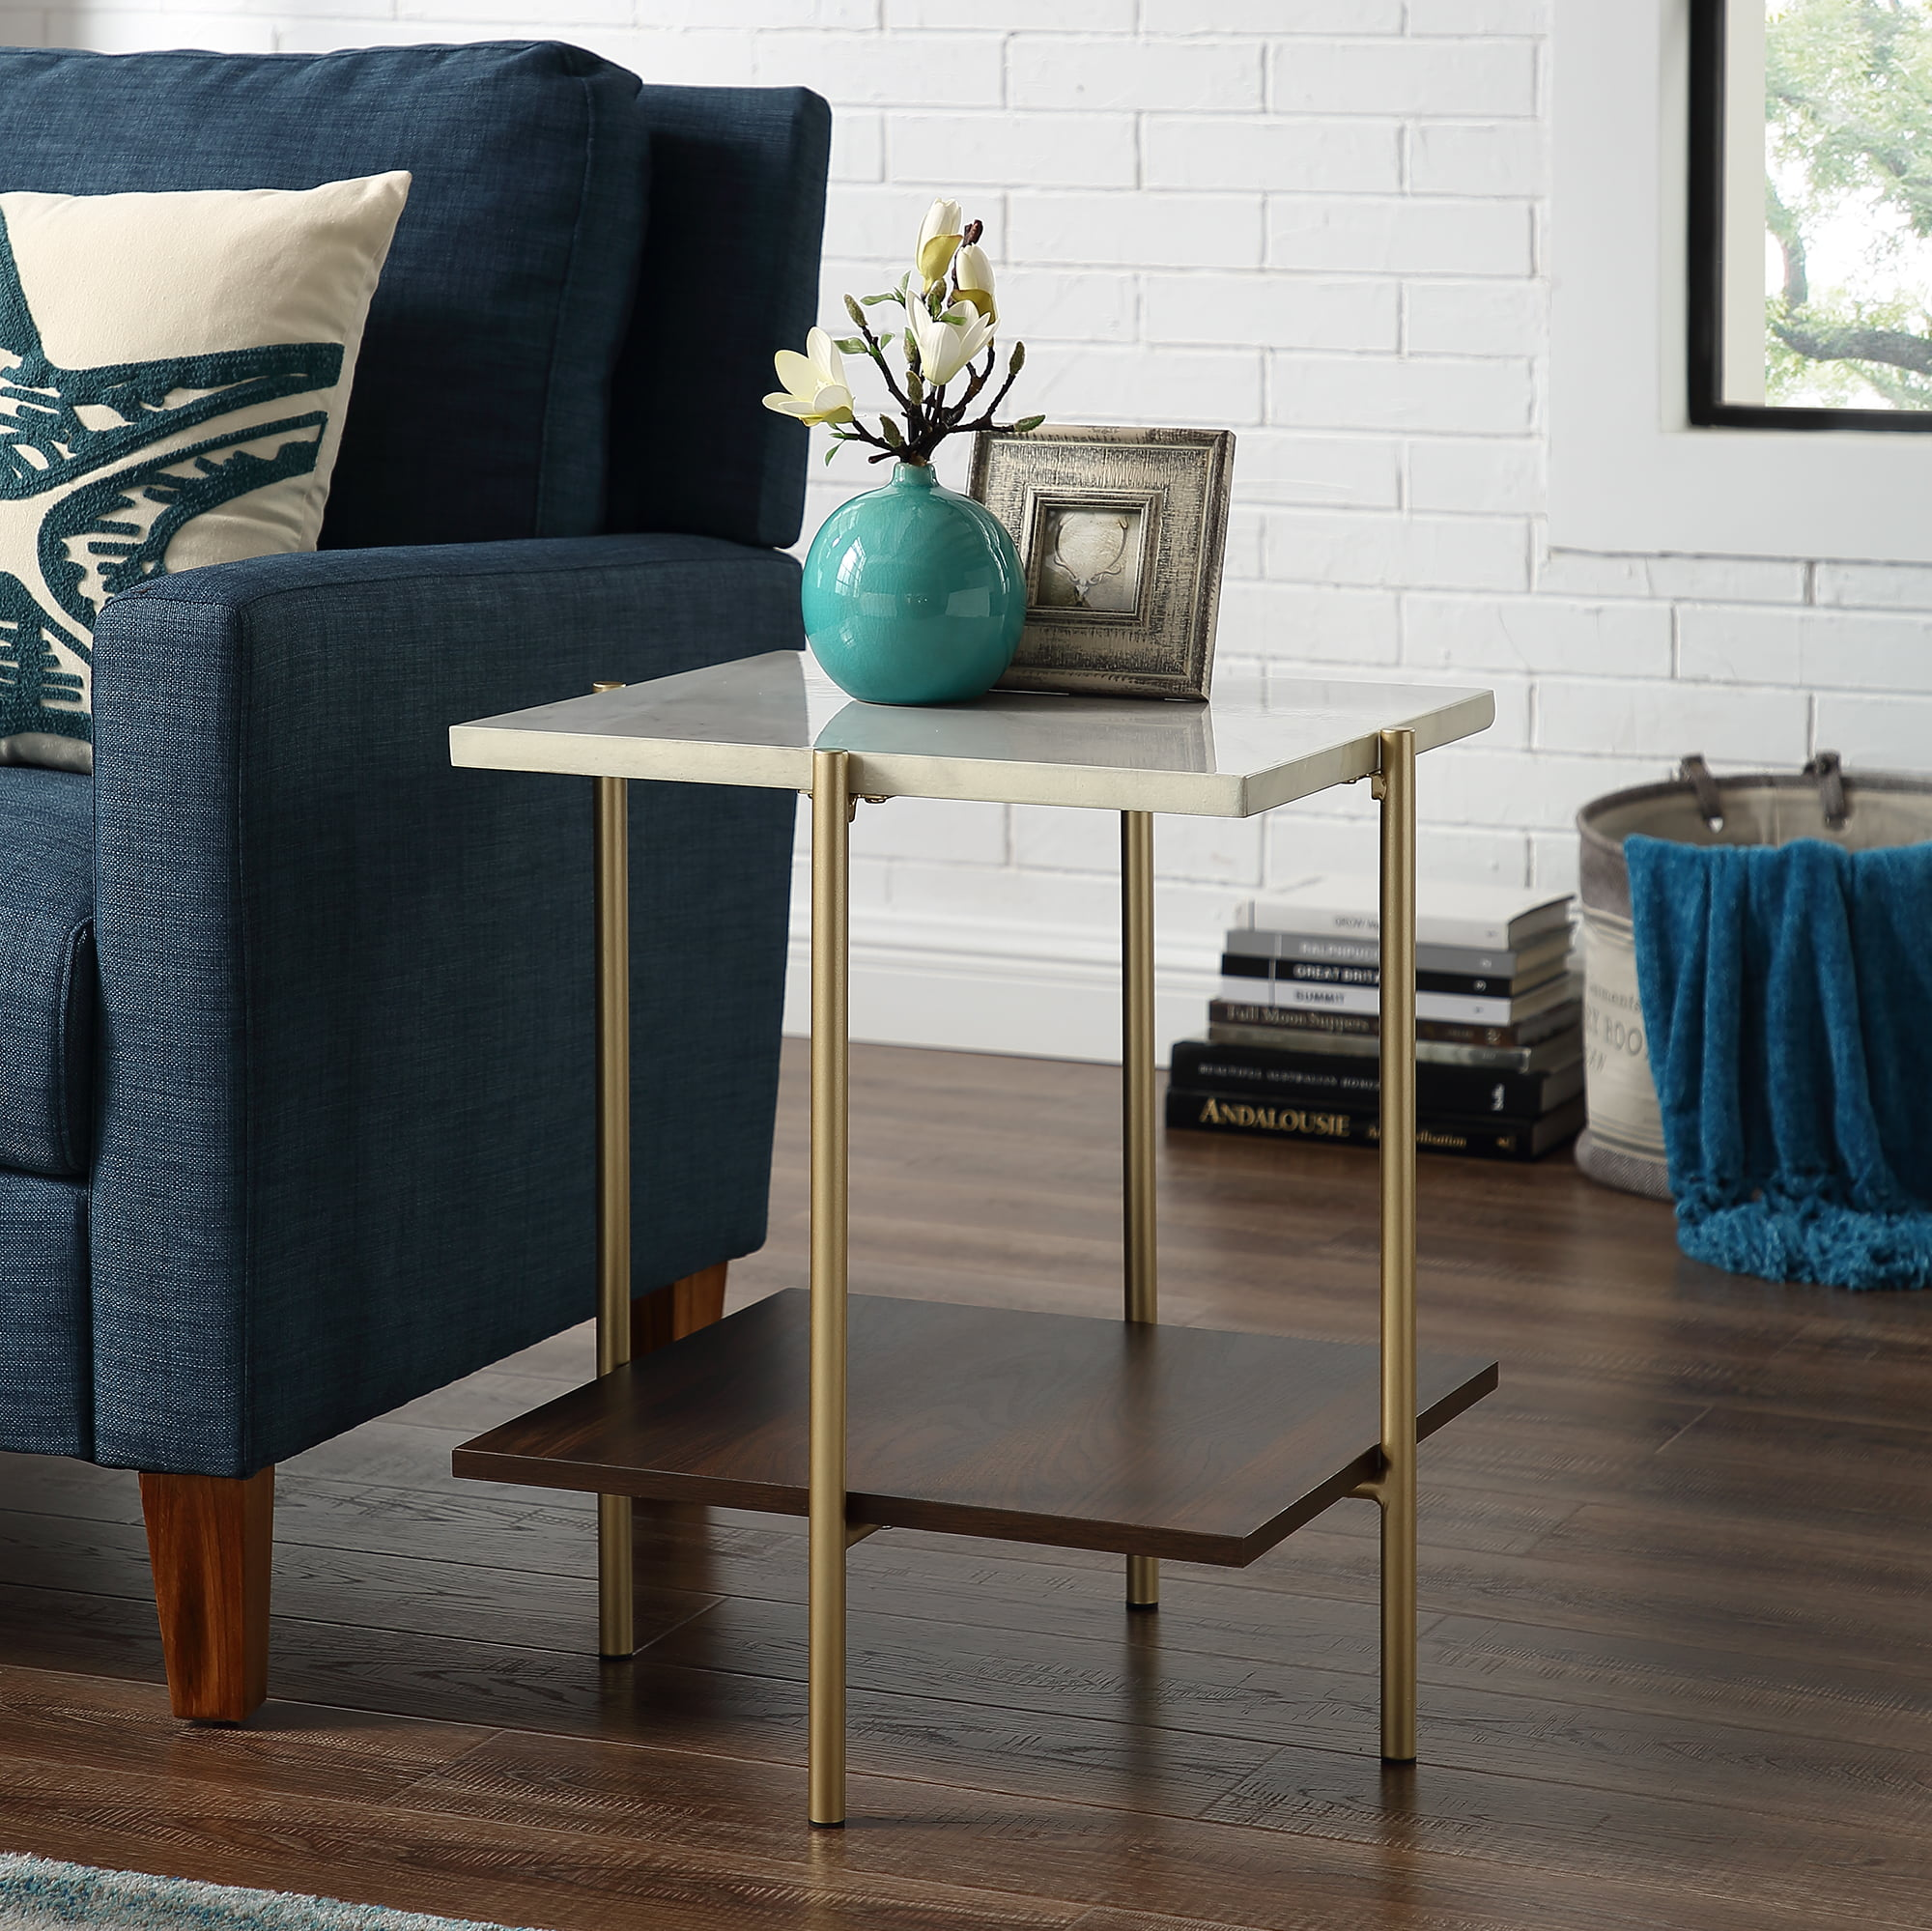 "Manor Park 20"" Mid-Century Modern Square Side Table Marble Gold by Manor Park"